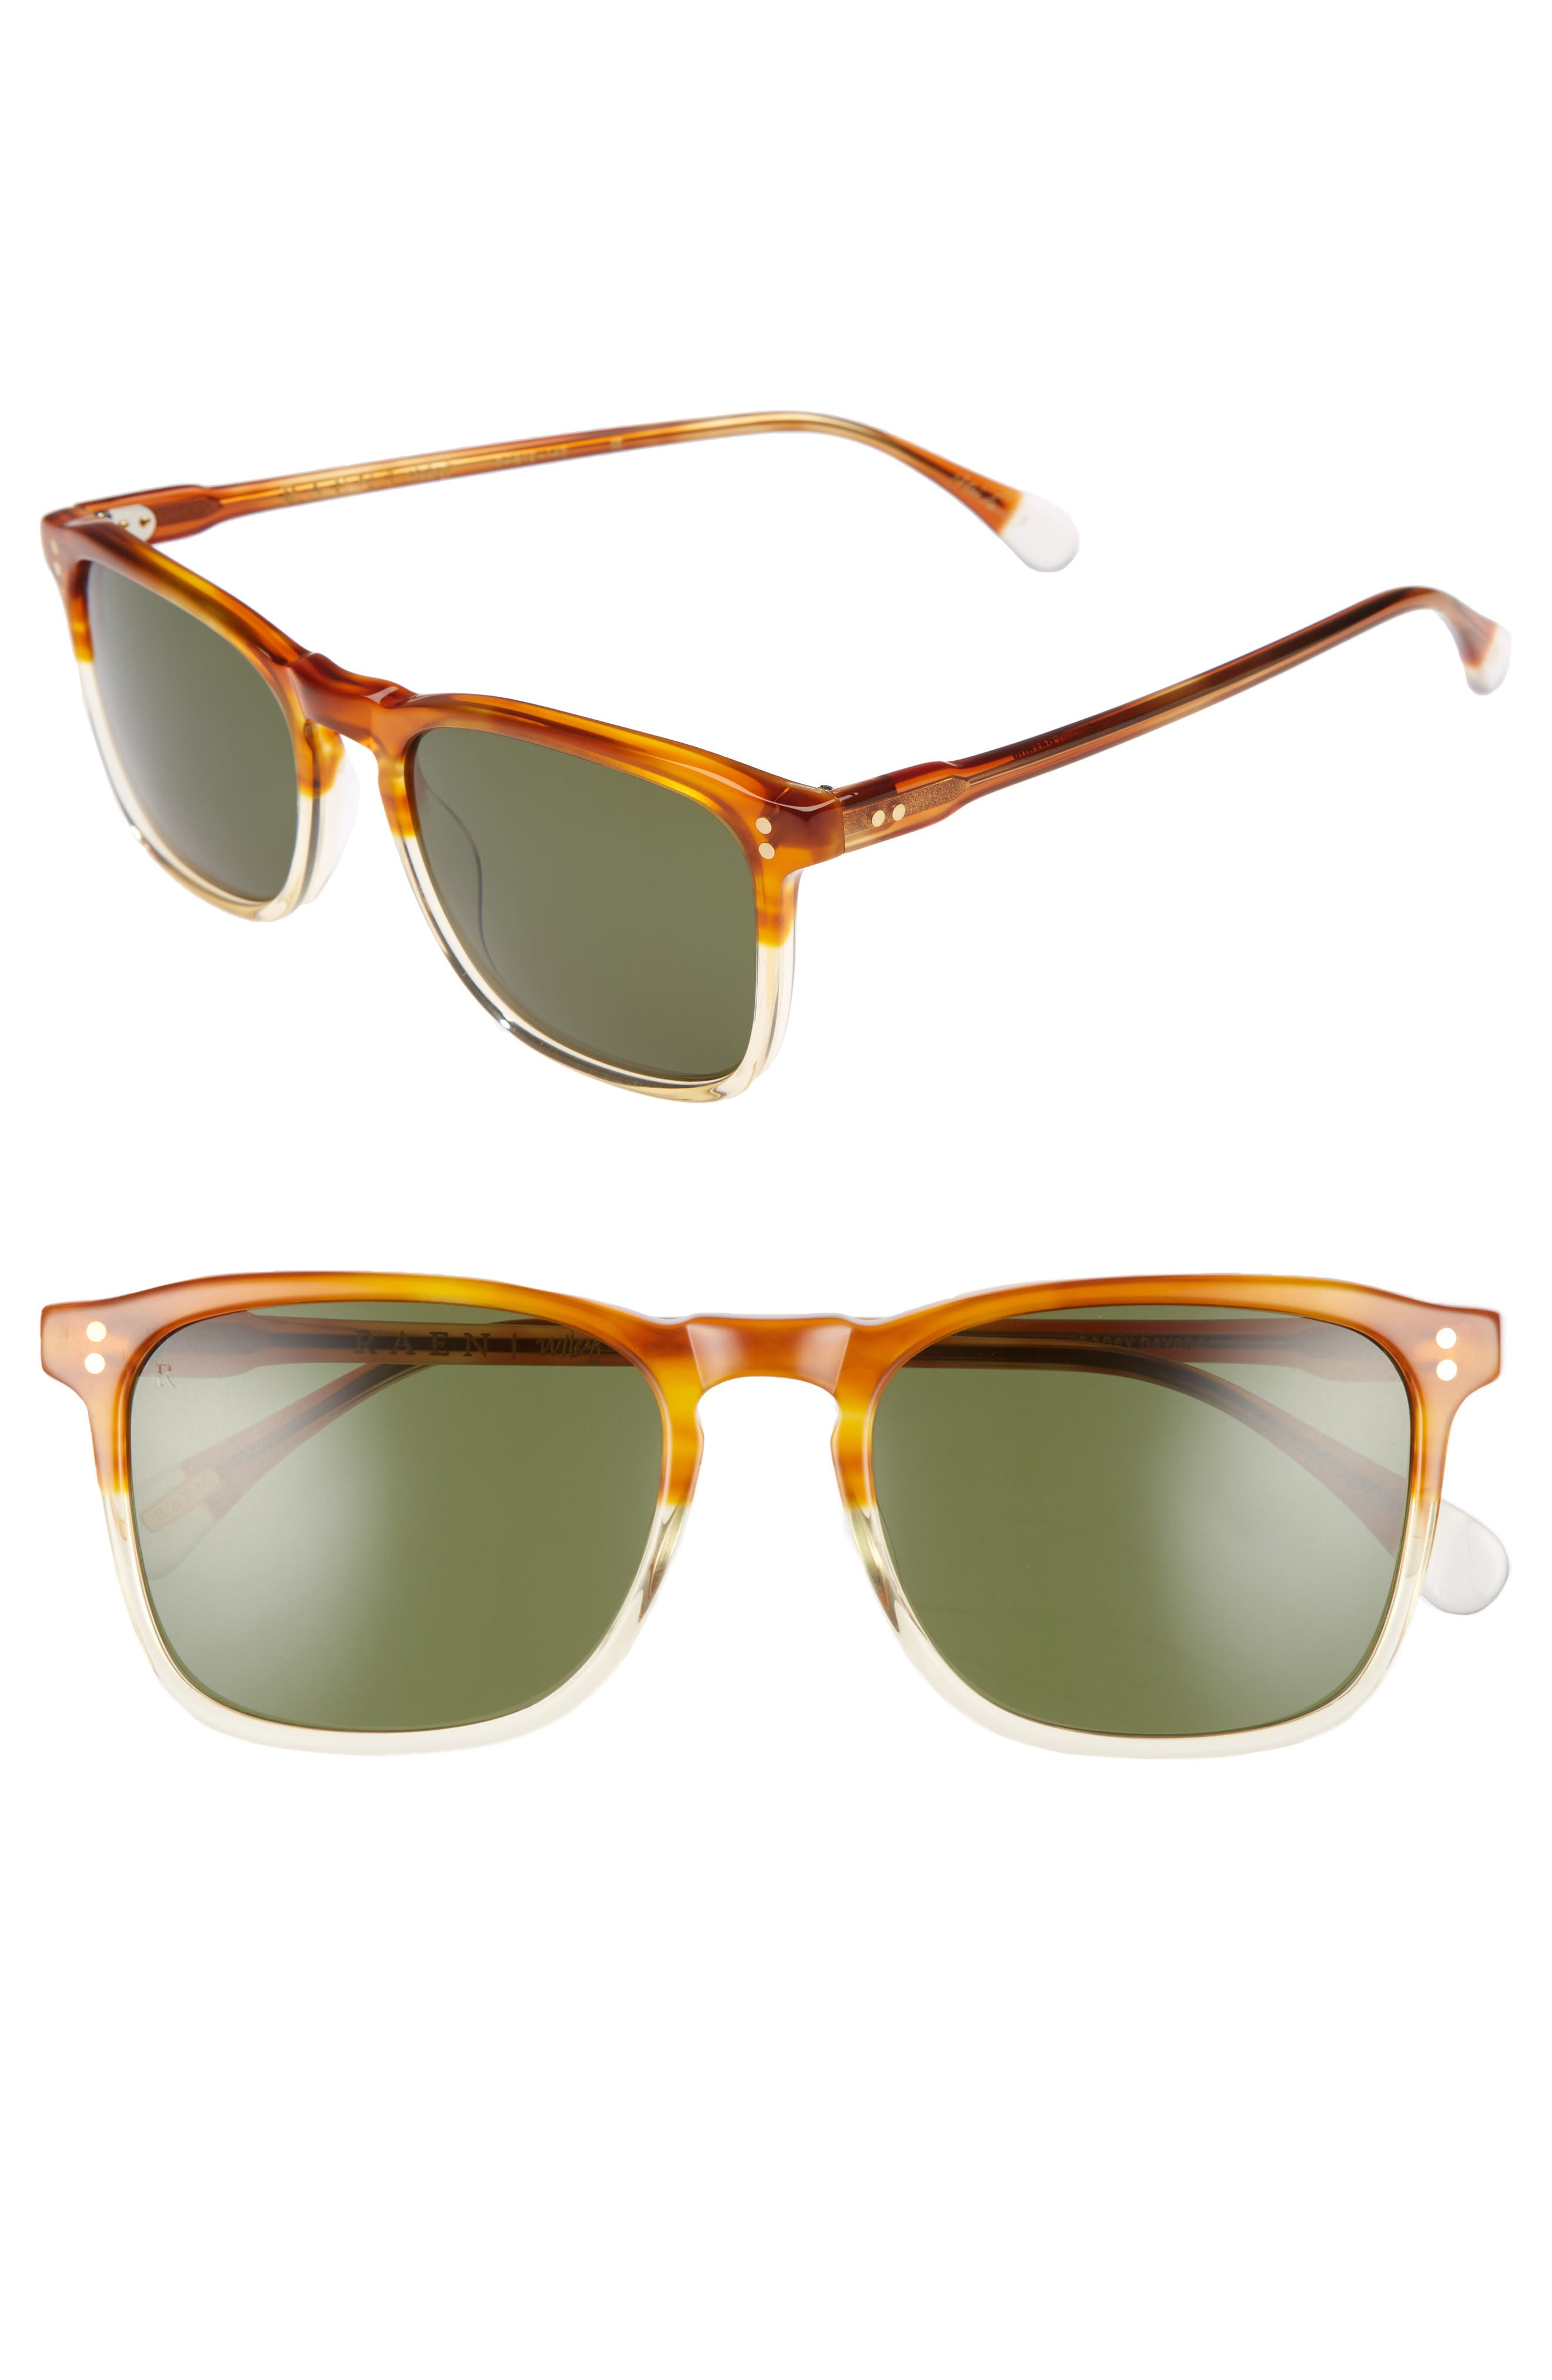 Main Image - Raen Wiley 54mm Polarized Sunglasses